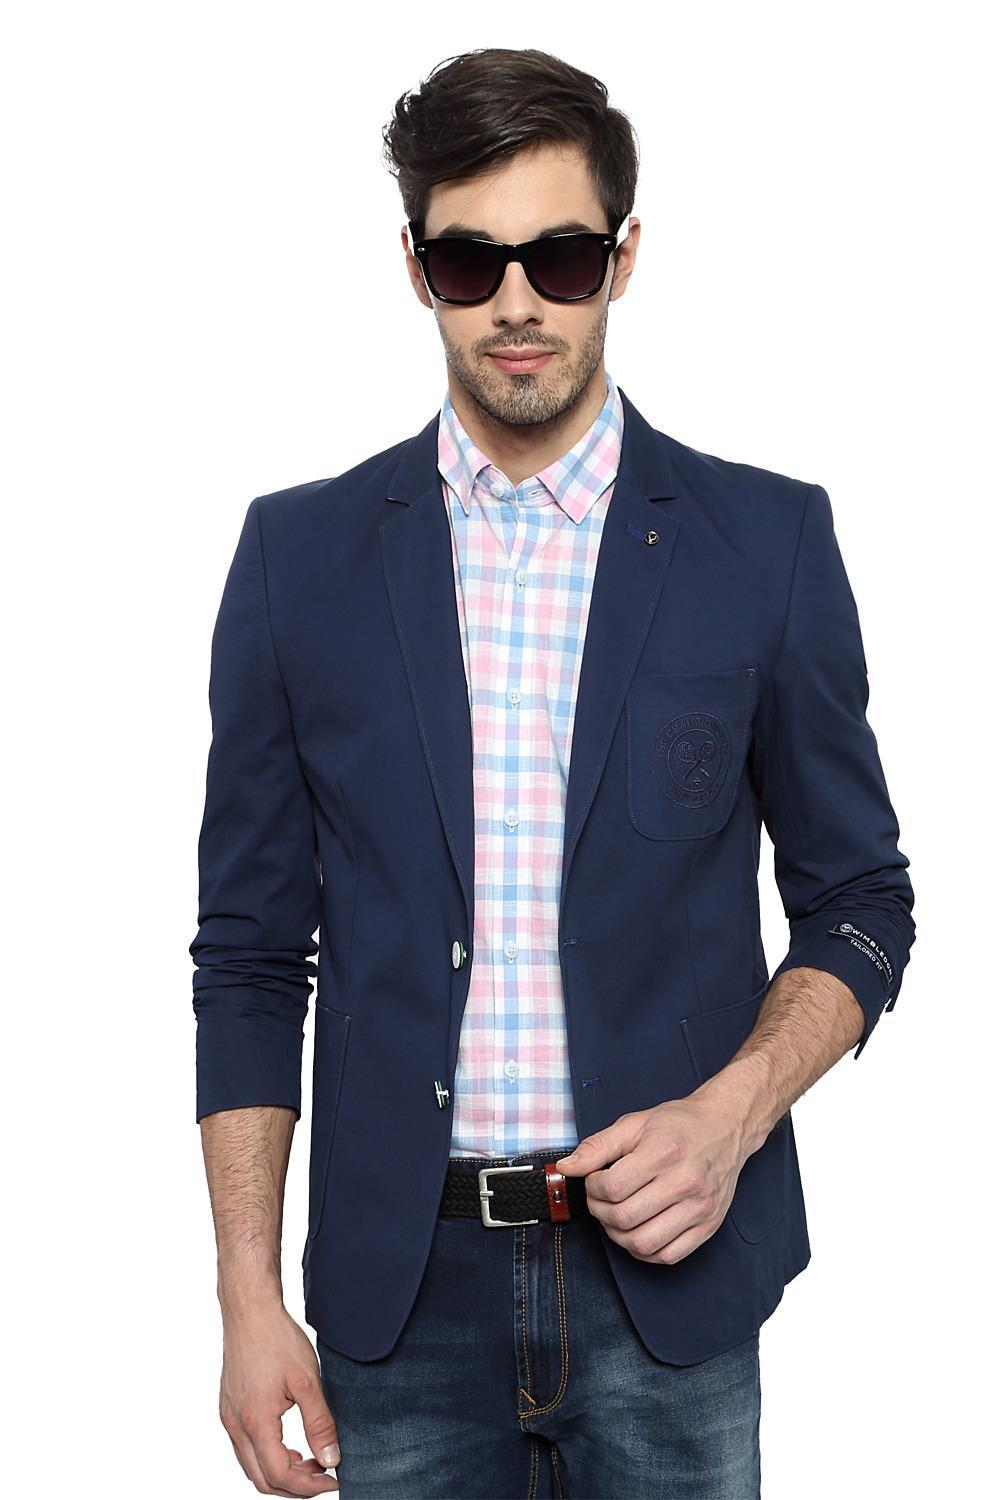 179bc42f9e3d Solly Sport Suits & Blazers, Allen Solly Blue Wimbledon Blazer for Men at  Allensolly.com